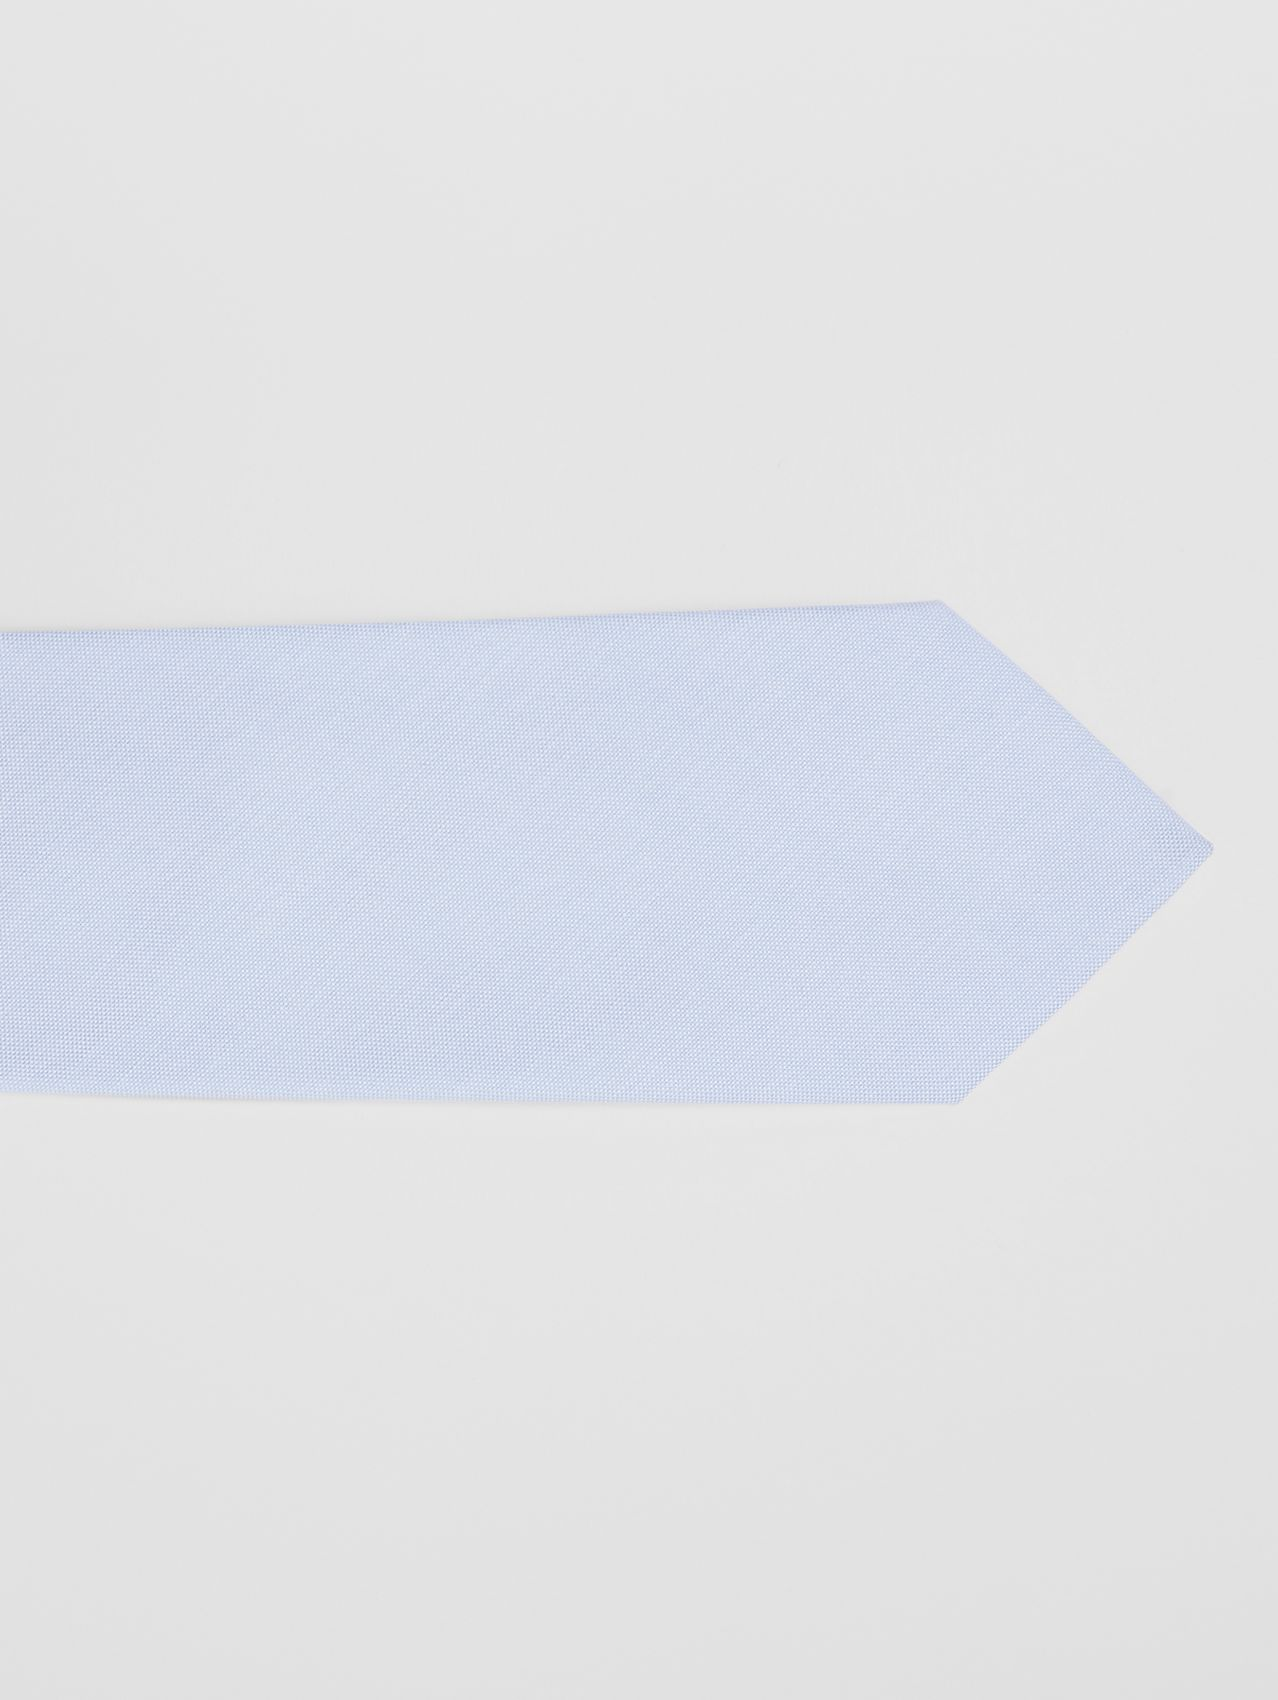 Classic Cut Cotton Tie in Pale Blue